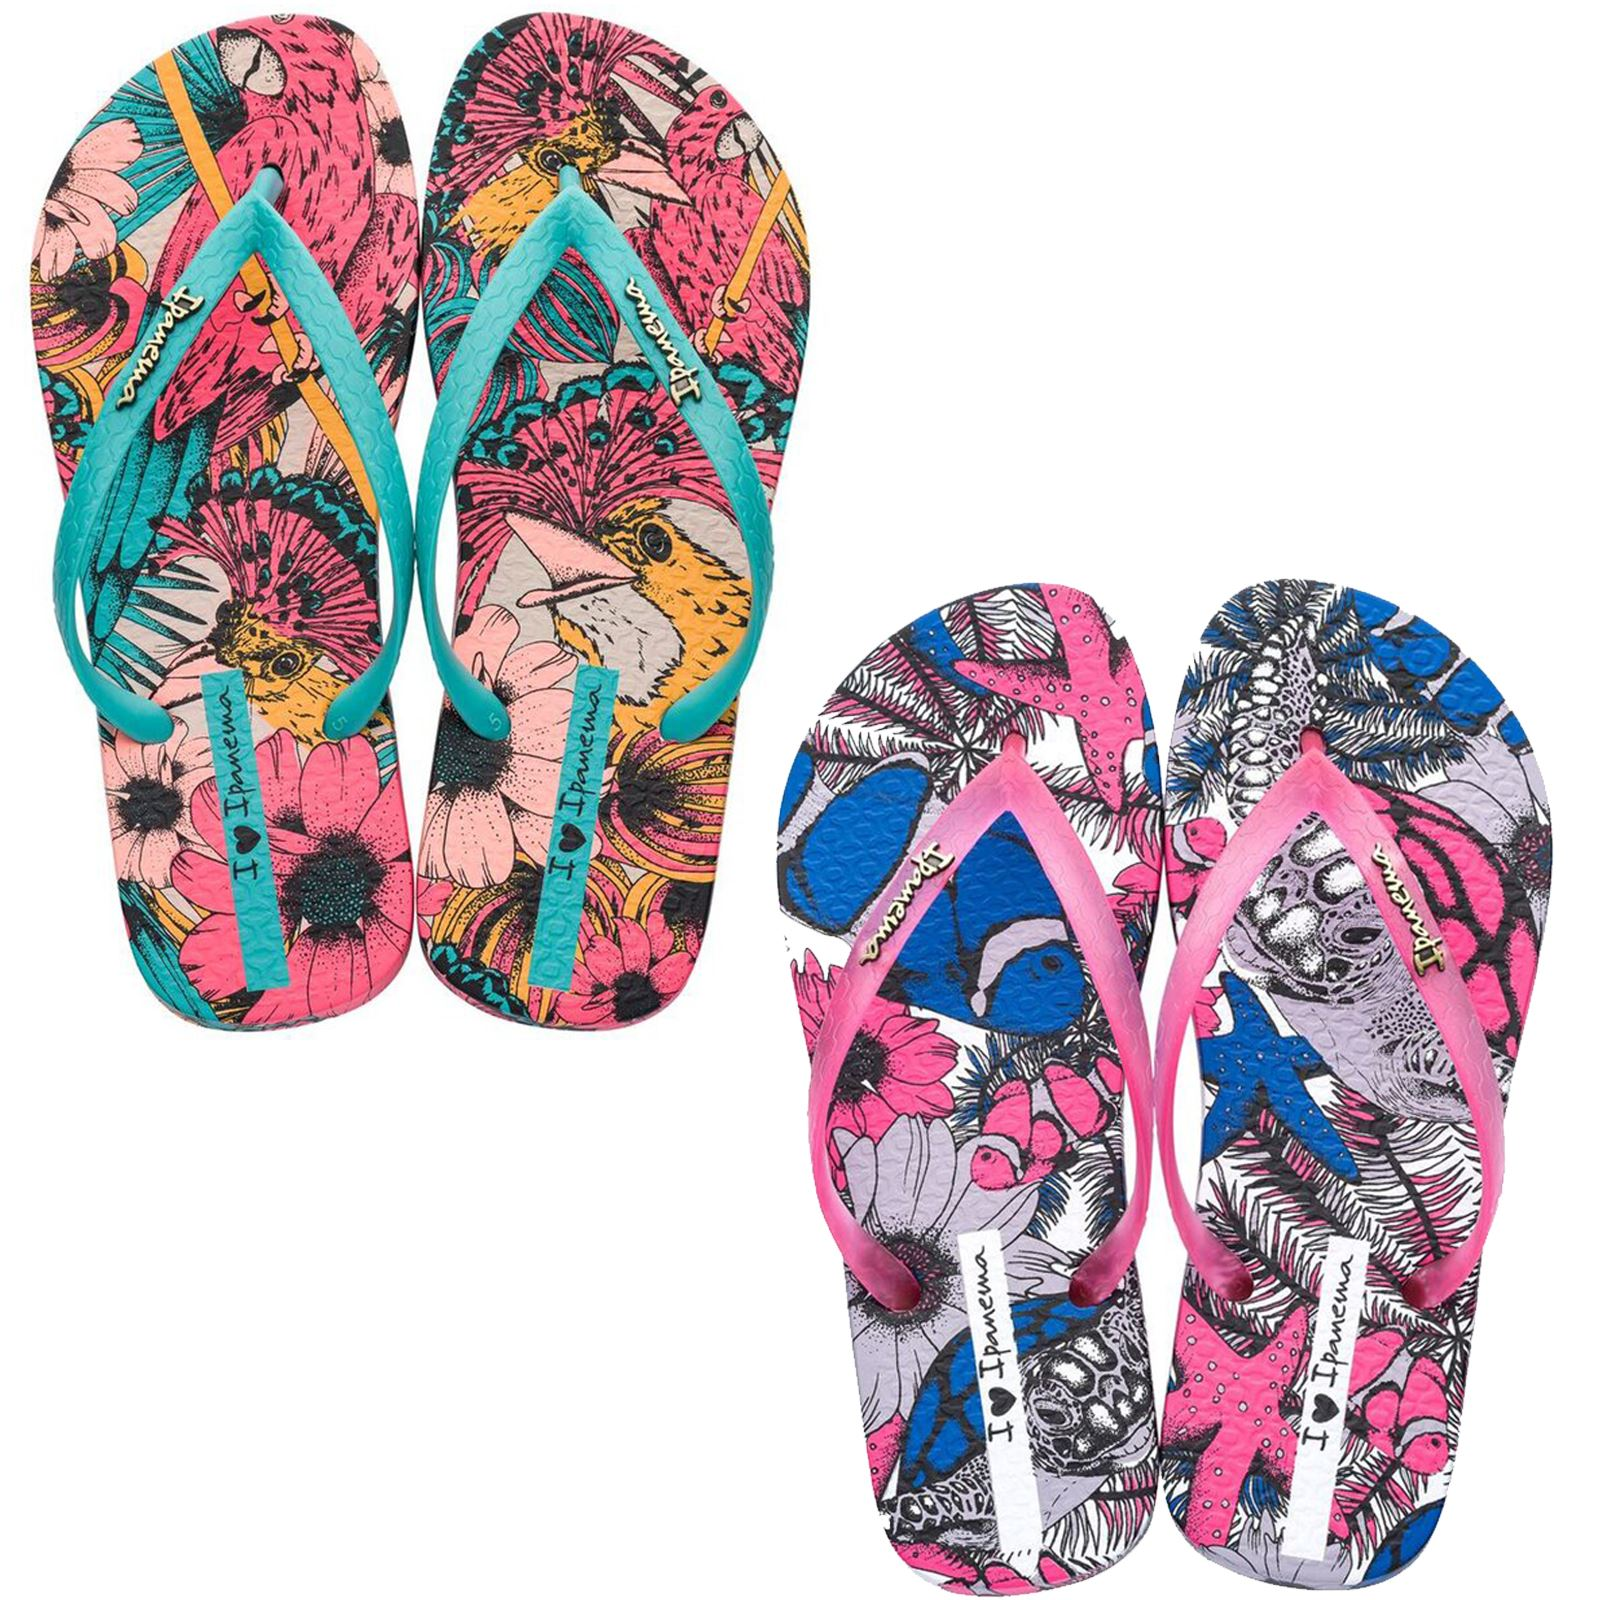 fddf39b31b4647 Details about Ipanema Tropical Beauty Flip Flops Sandals in Pink    Turquoise 82458